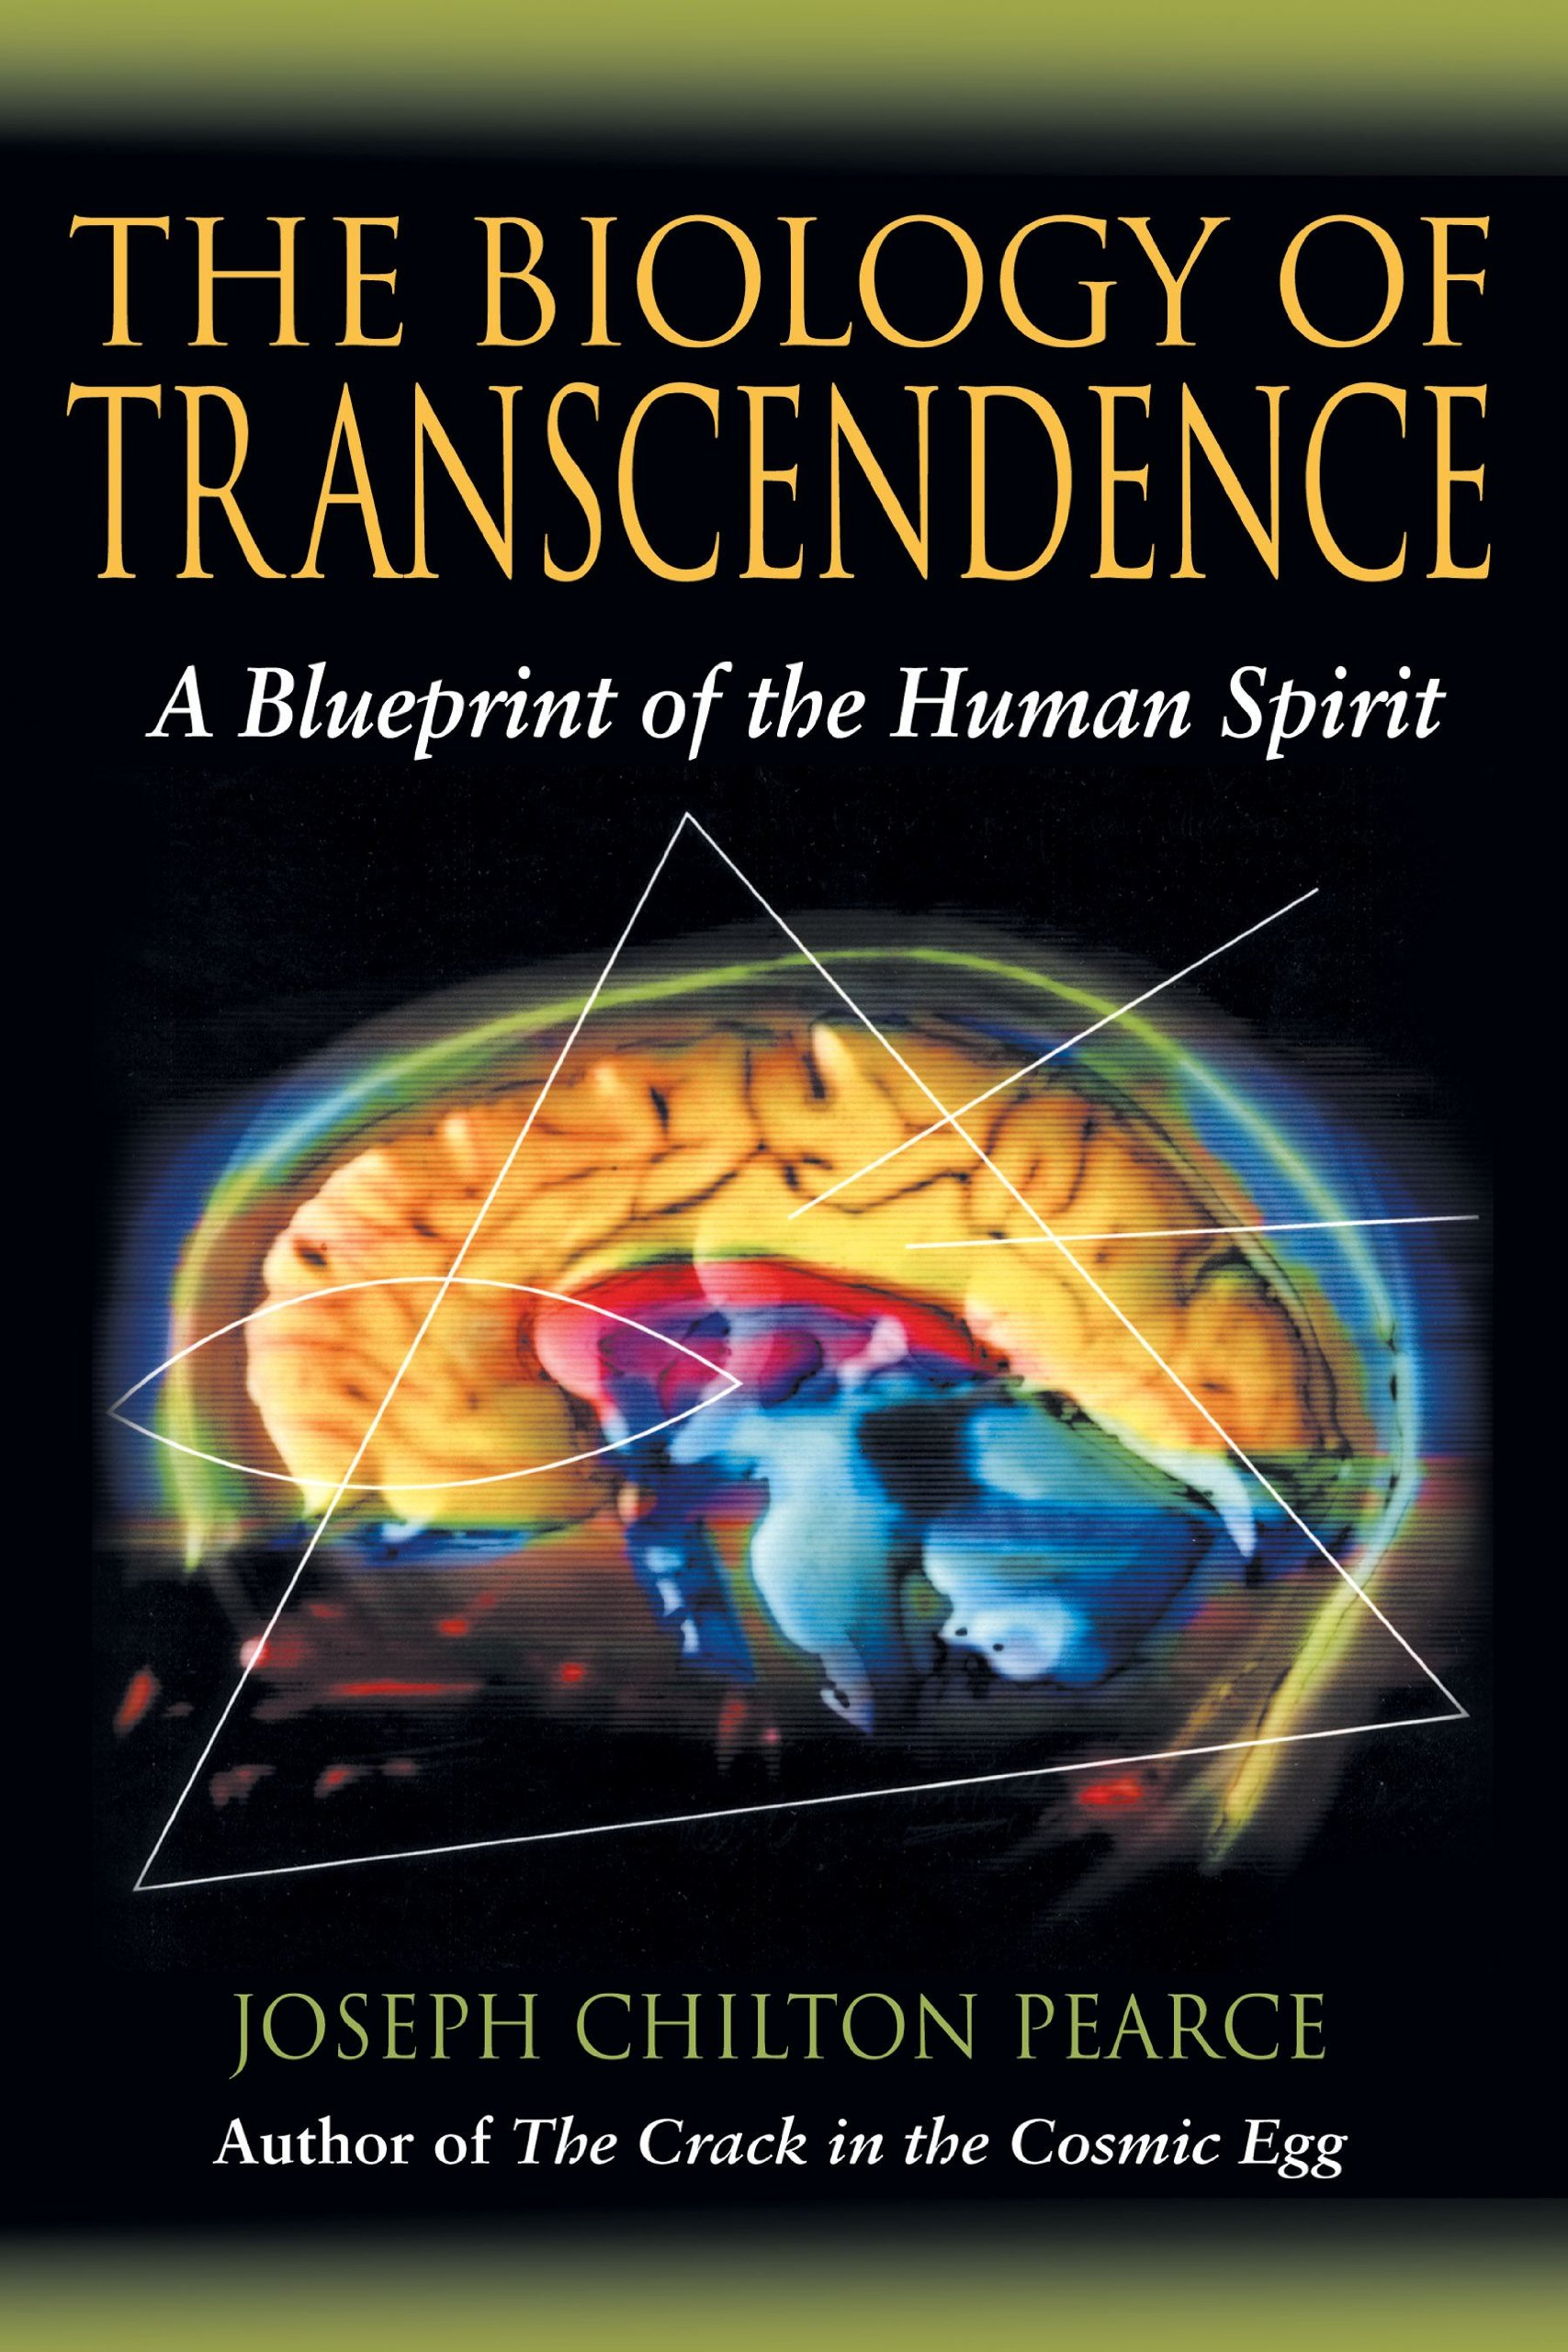 The biology of transcendence a blueprint of the human spirit the biology of transcendence a blueprint of the human spirit joseph chilton pearce 8601405933324 amazon books malvernweather Gallery